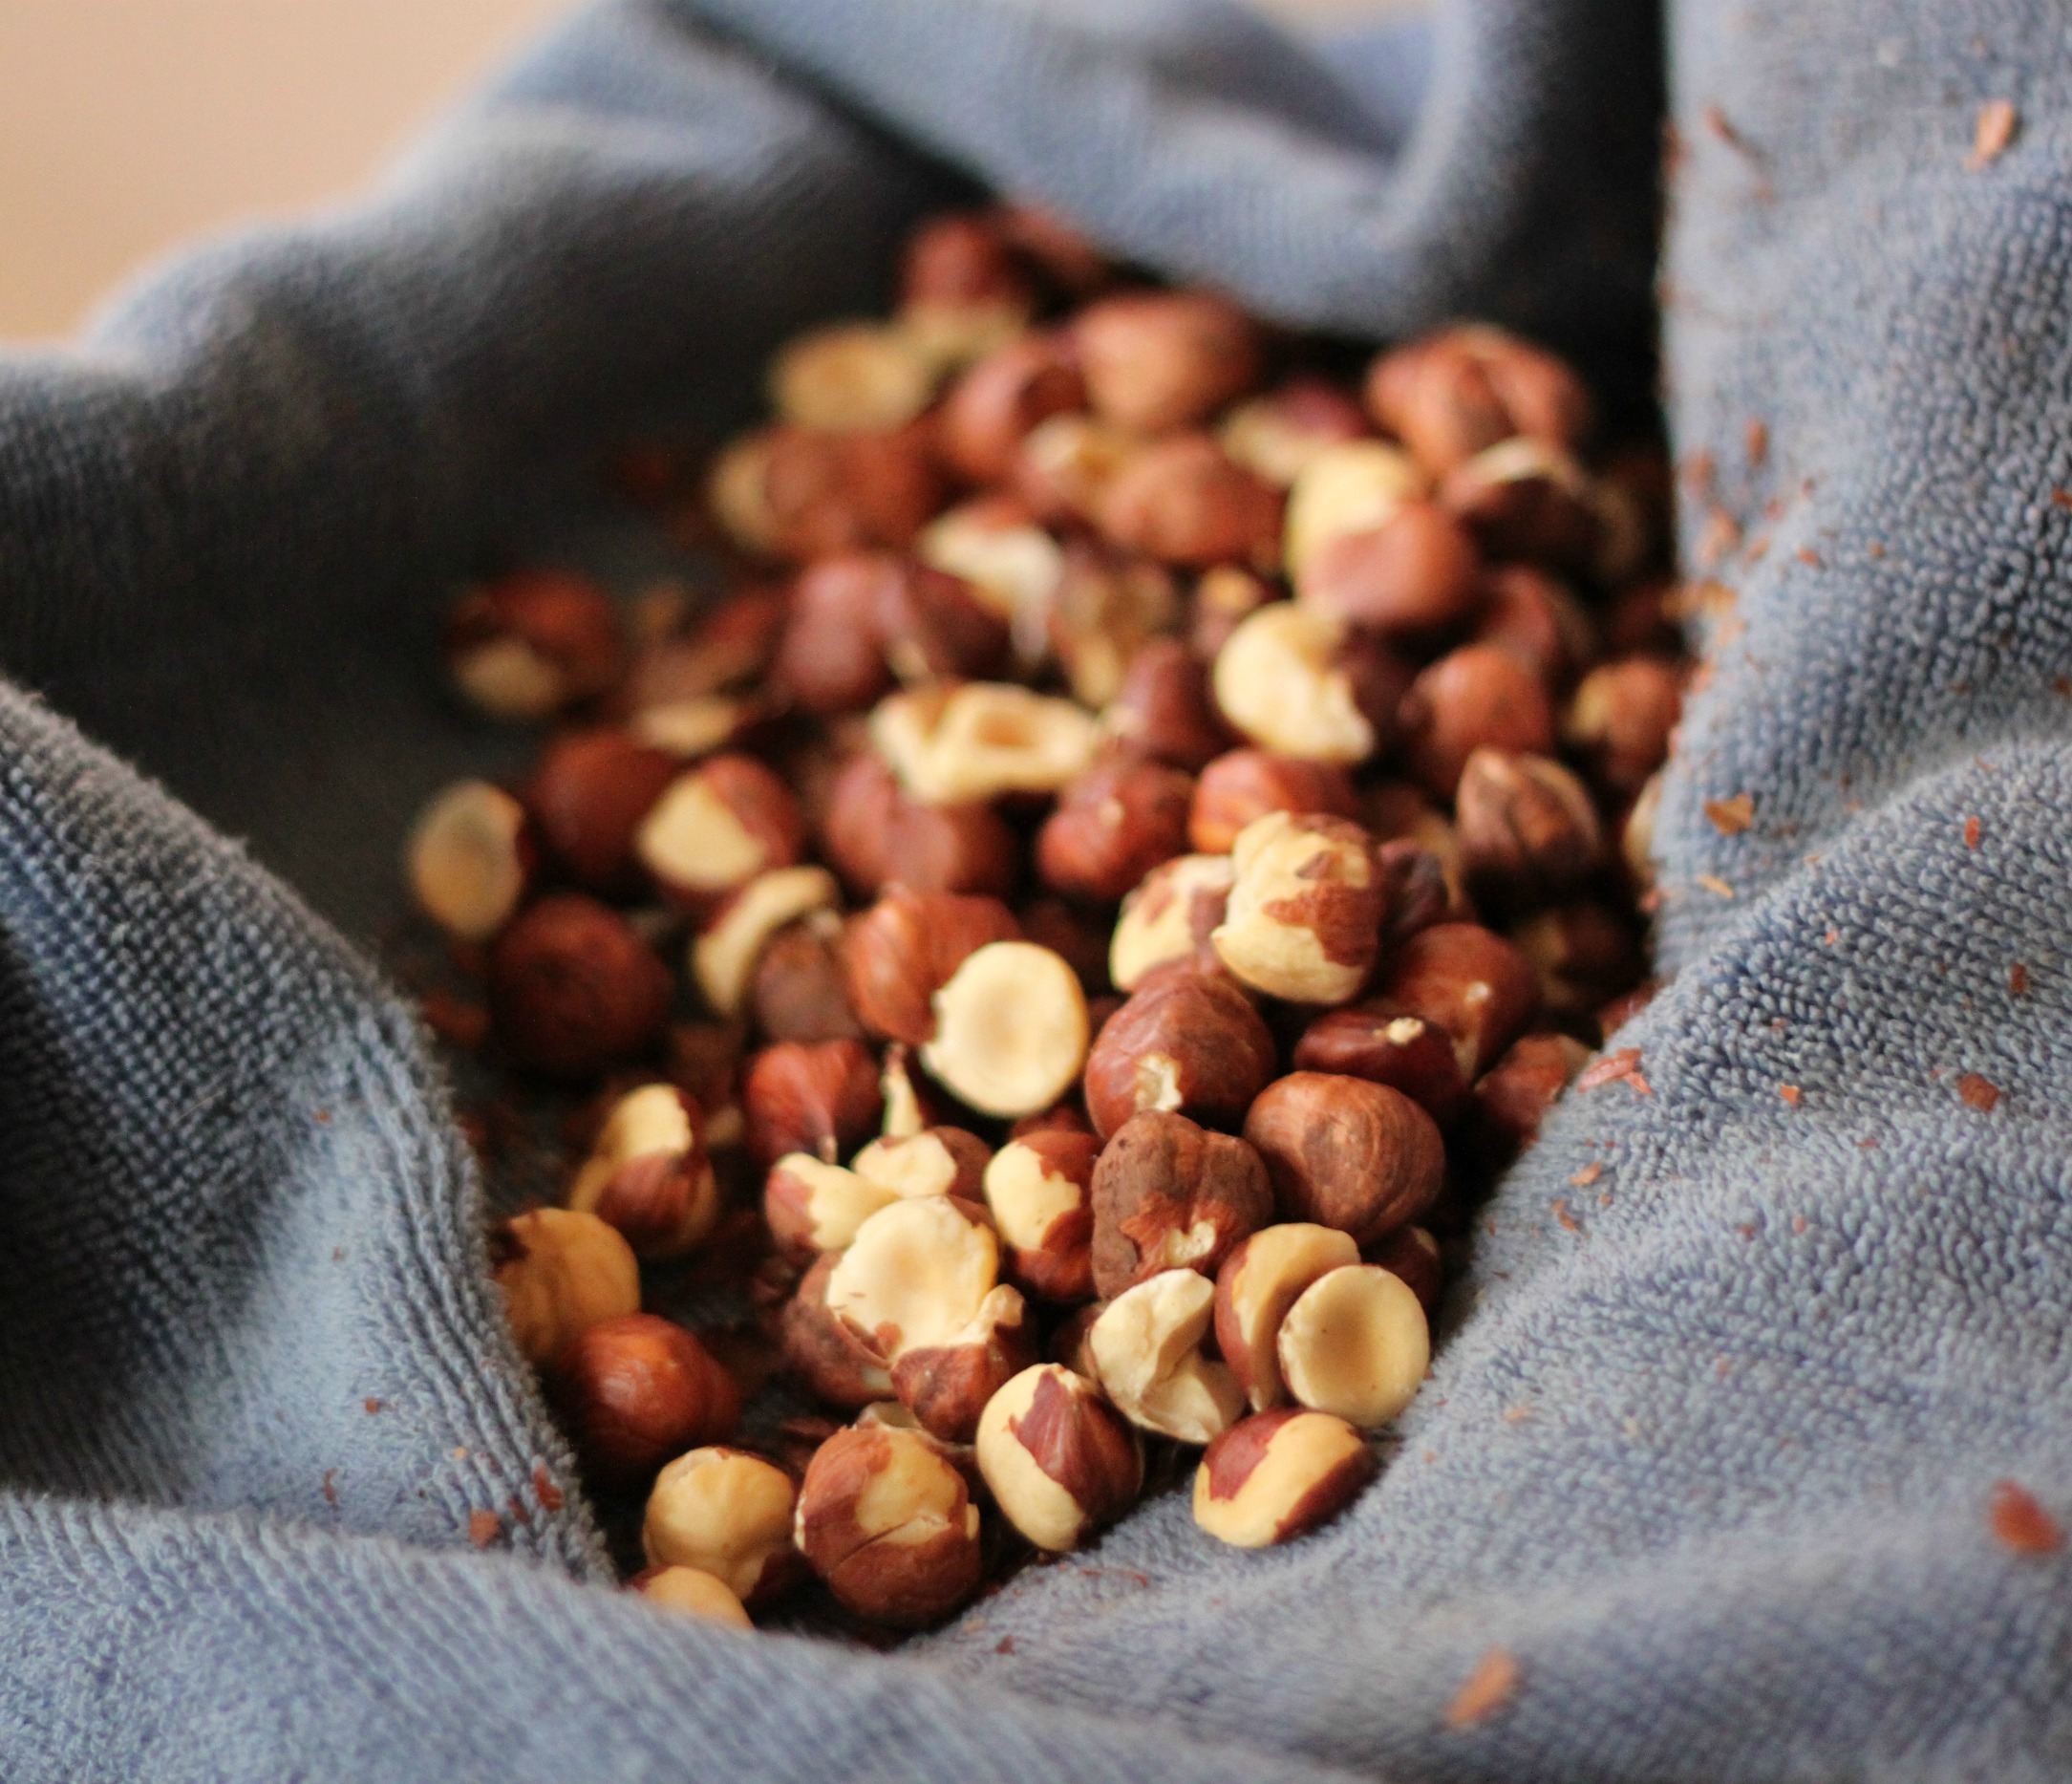 Roasted hazelnuts in kitchen towel